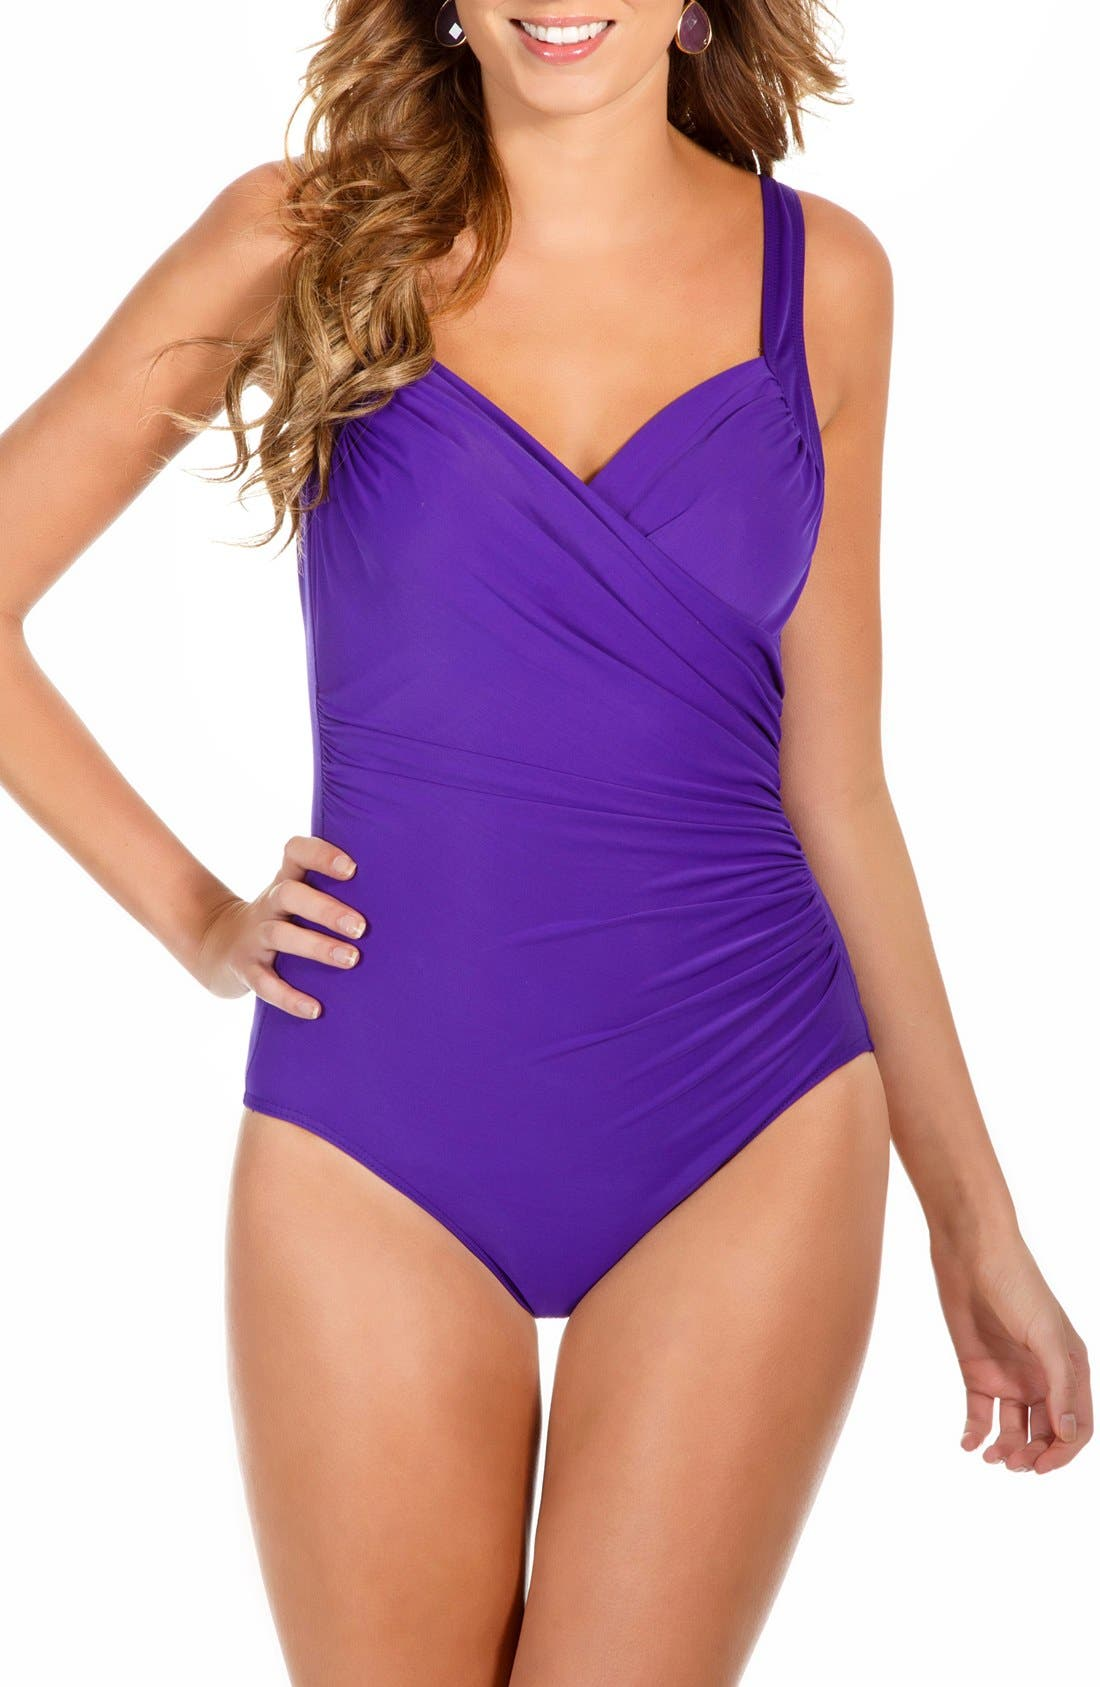 'Sanibel' Underwire One-Piece Swimsuit,                             Main thumbnail 6, color,